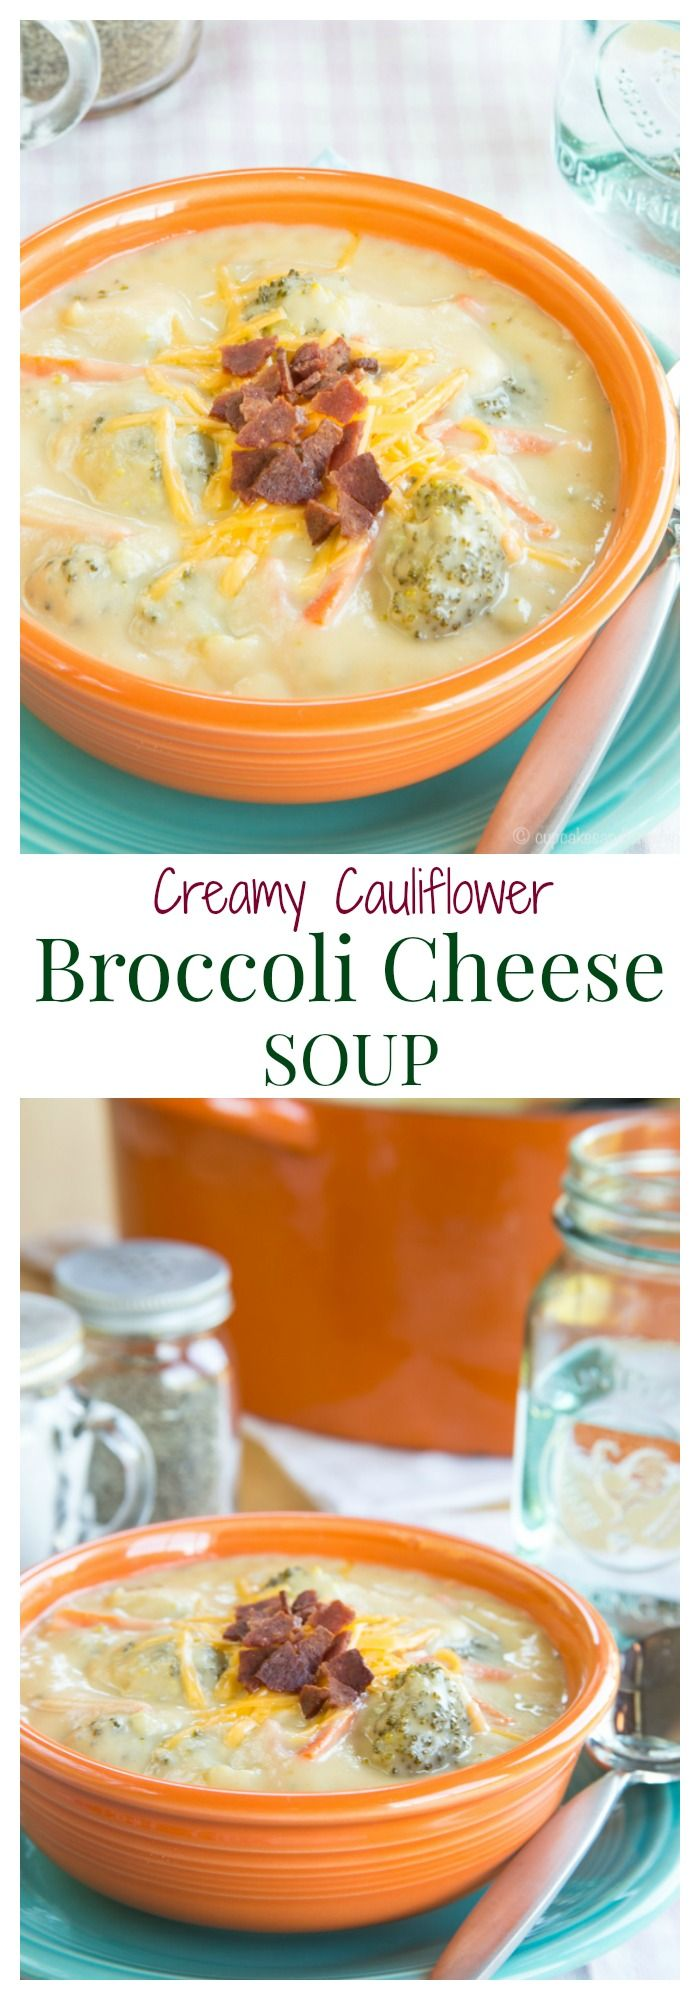 Creamy Cauliflower Broccoli Cheese Soup for #SundaySupper - Cupcakes & Kale Chips